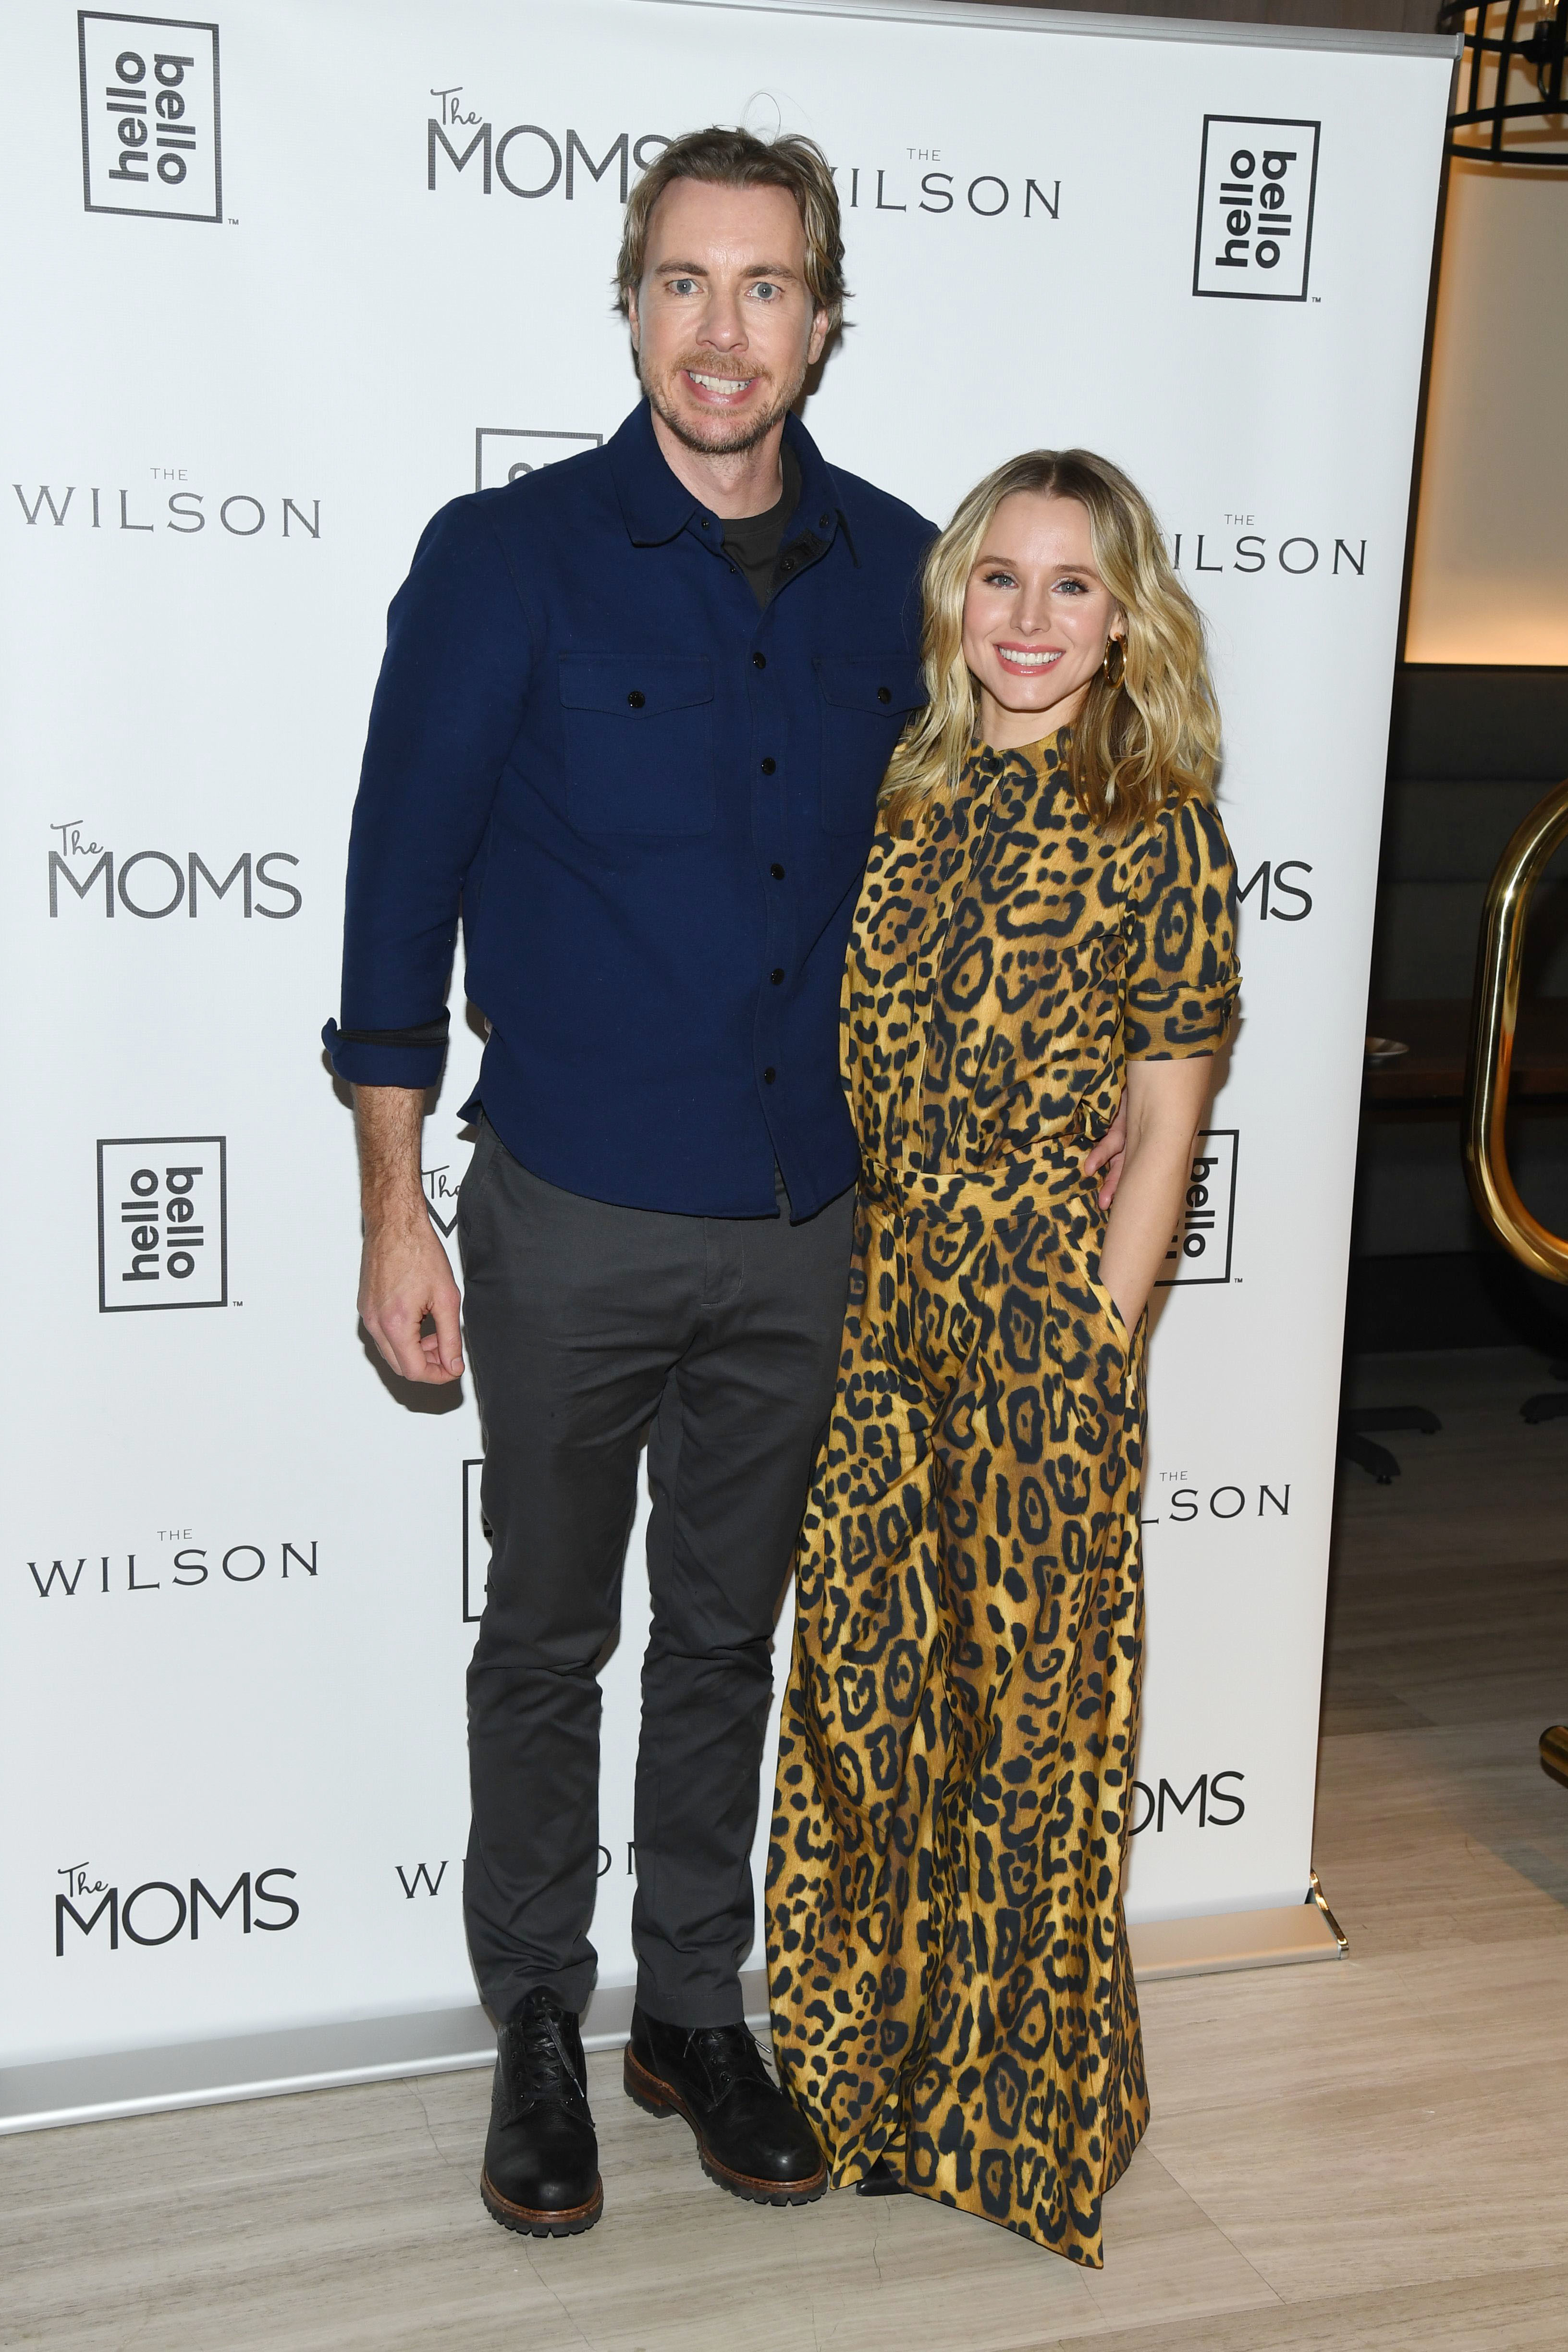 Dax Shepard and Kristen Bell attend the Hello Bello brand launch in New York City on Feb. 25, 2019.